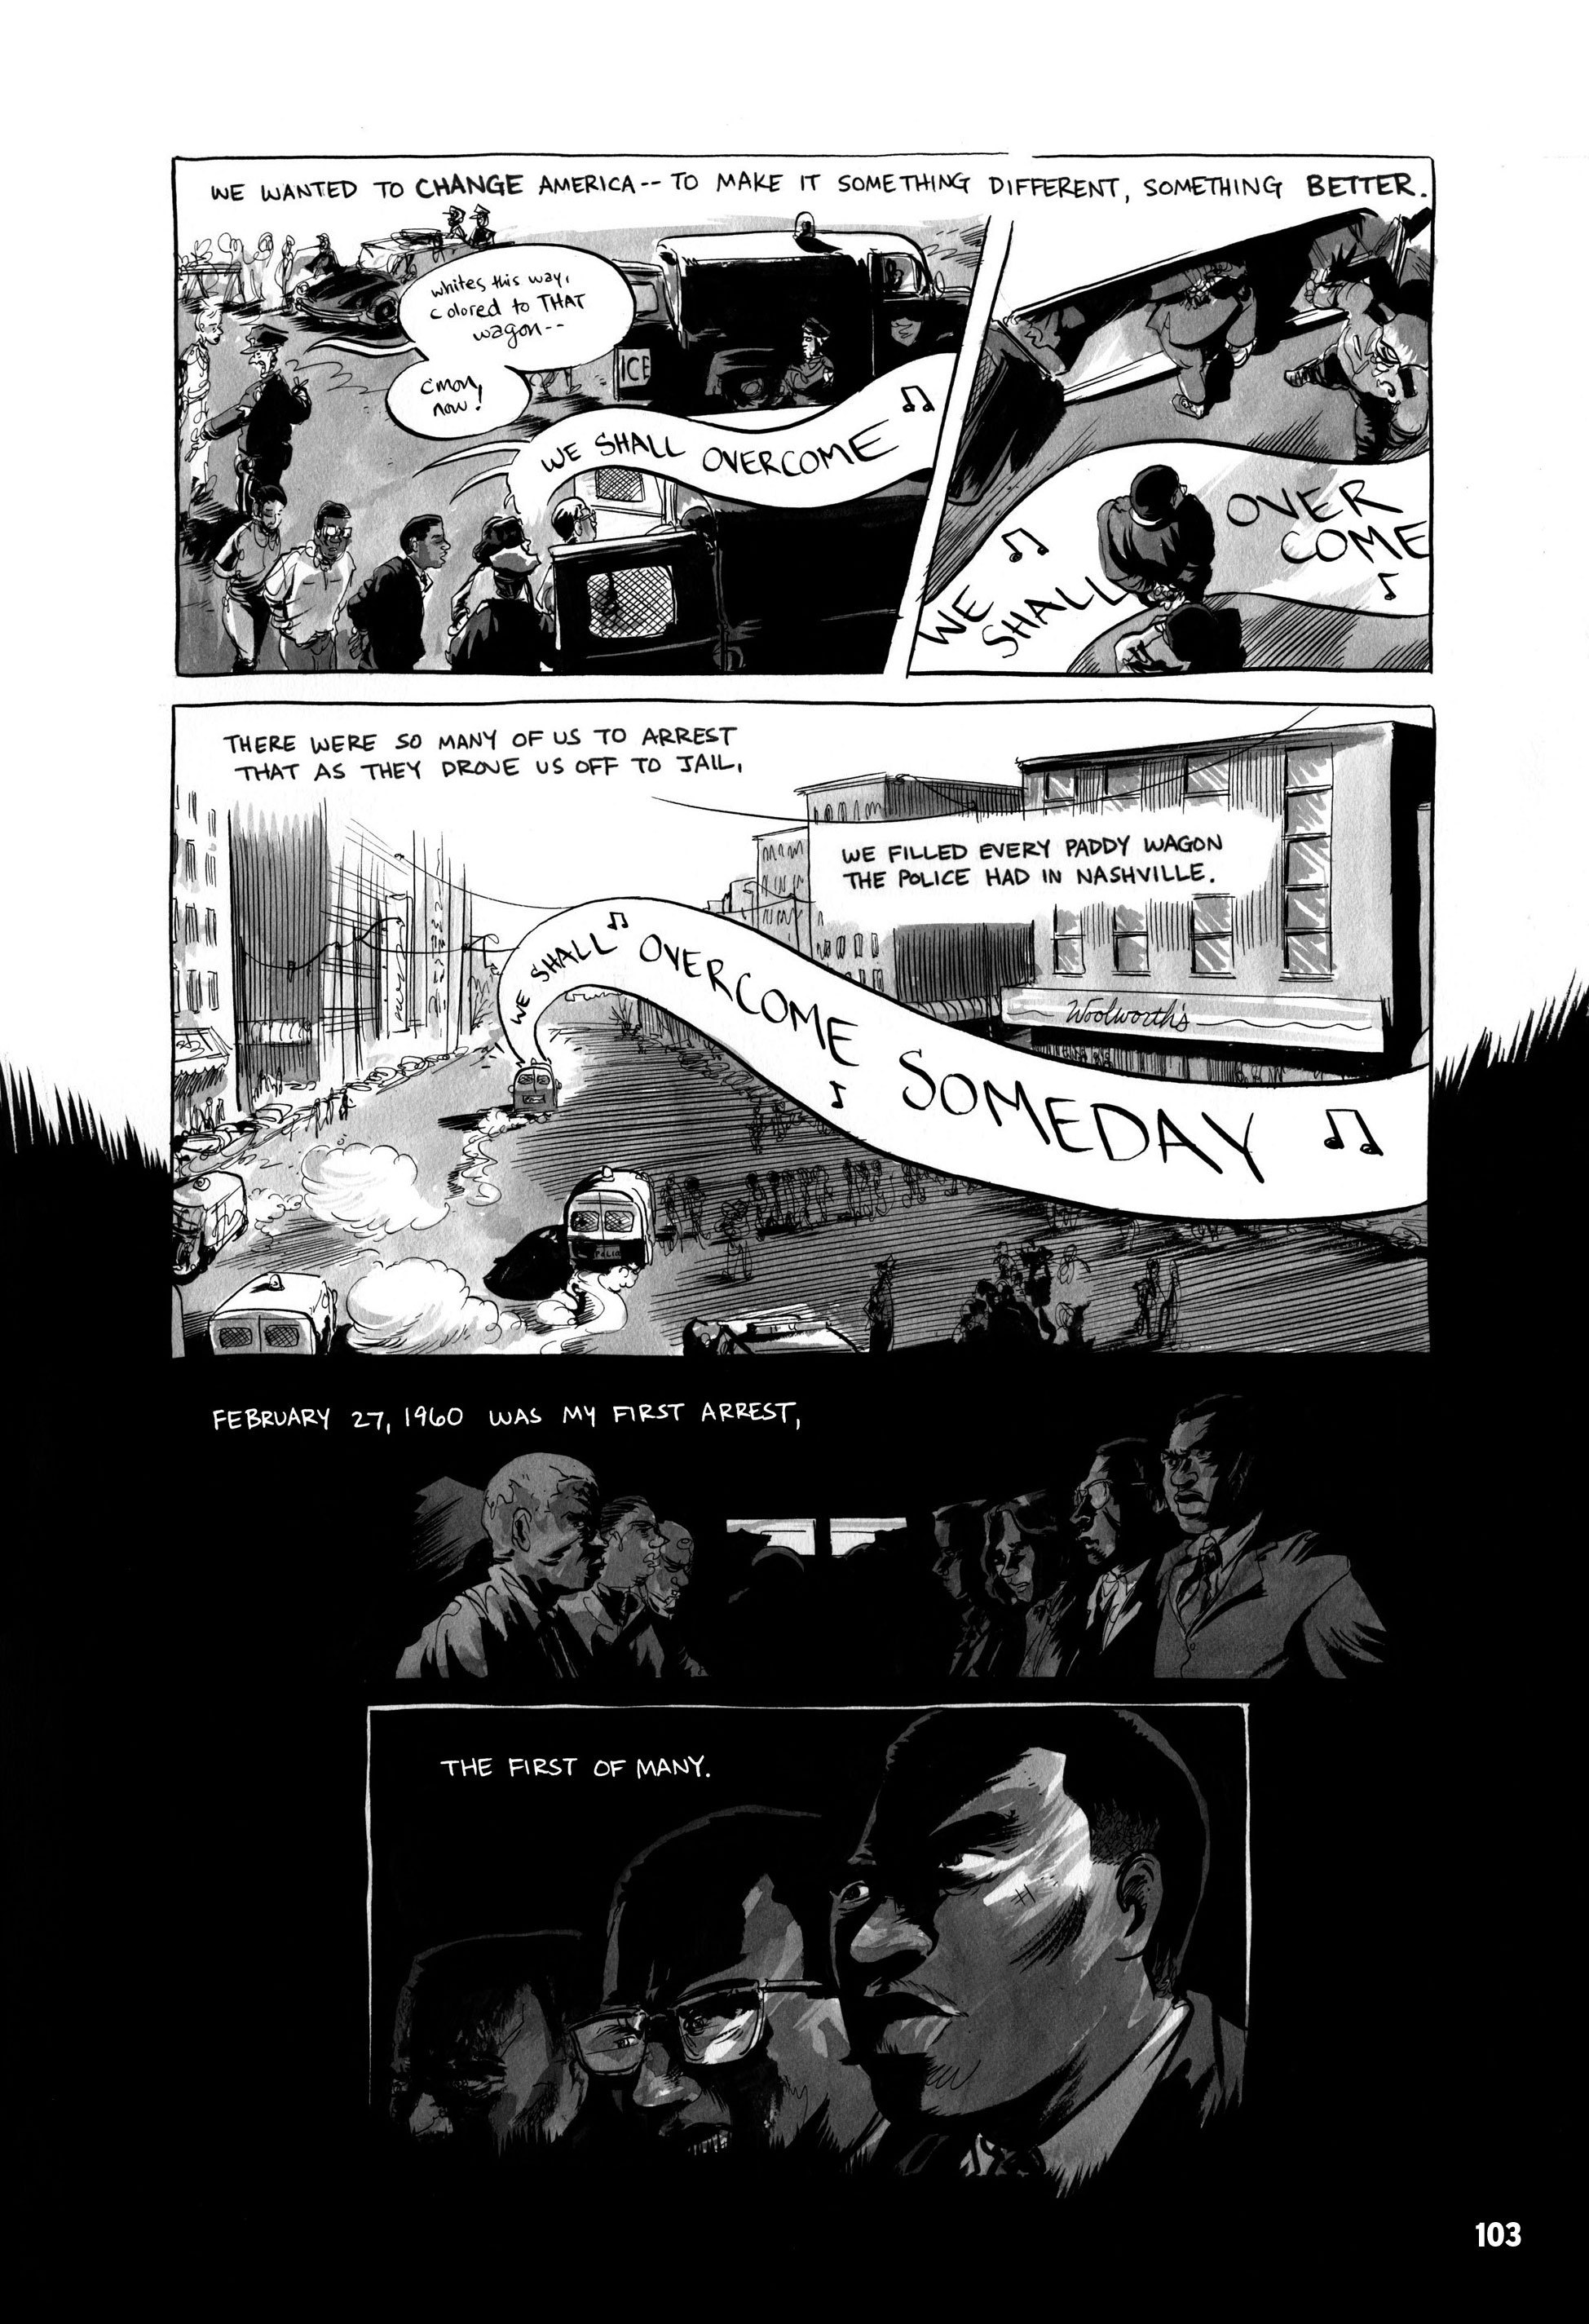 Its Not Just About Health Care >> John Lewis' 'March' Toward Justice Depicted In Graphic Novel : Code Switch : NPR